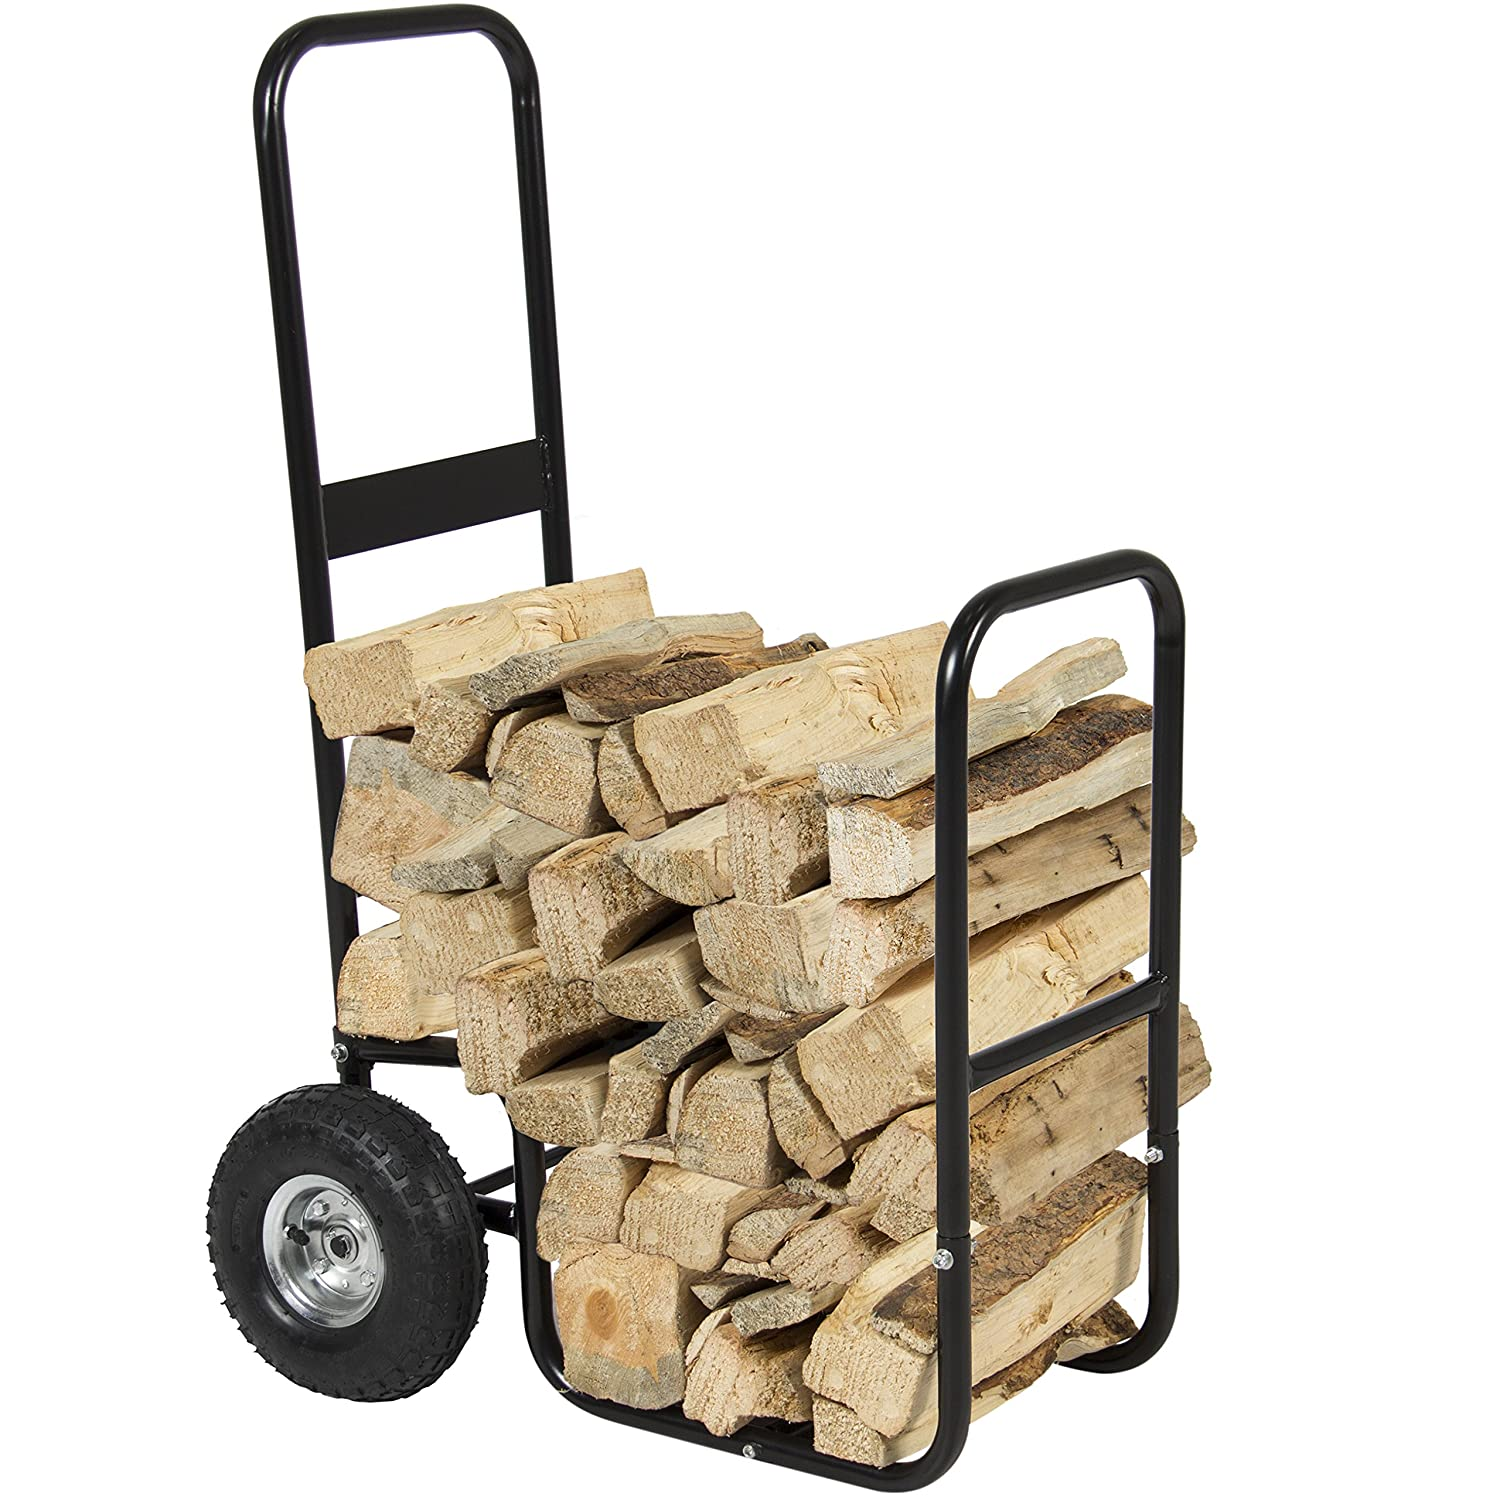 Buy Best Choice Products Cart Log Carrier Fireplace Wood Mover Hauler Rack Caddy Rolling Dolly: Firewood Racks - Amazon.com ? FREE DELIVERY possible on eligible purchases